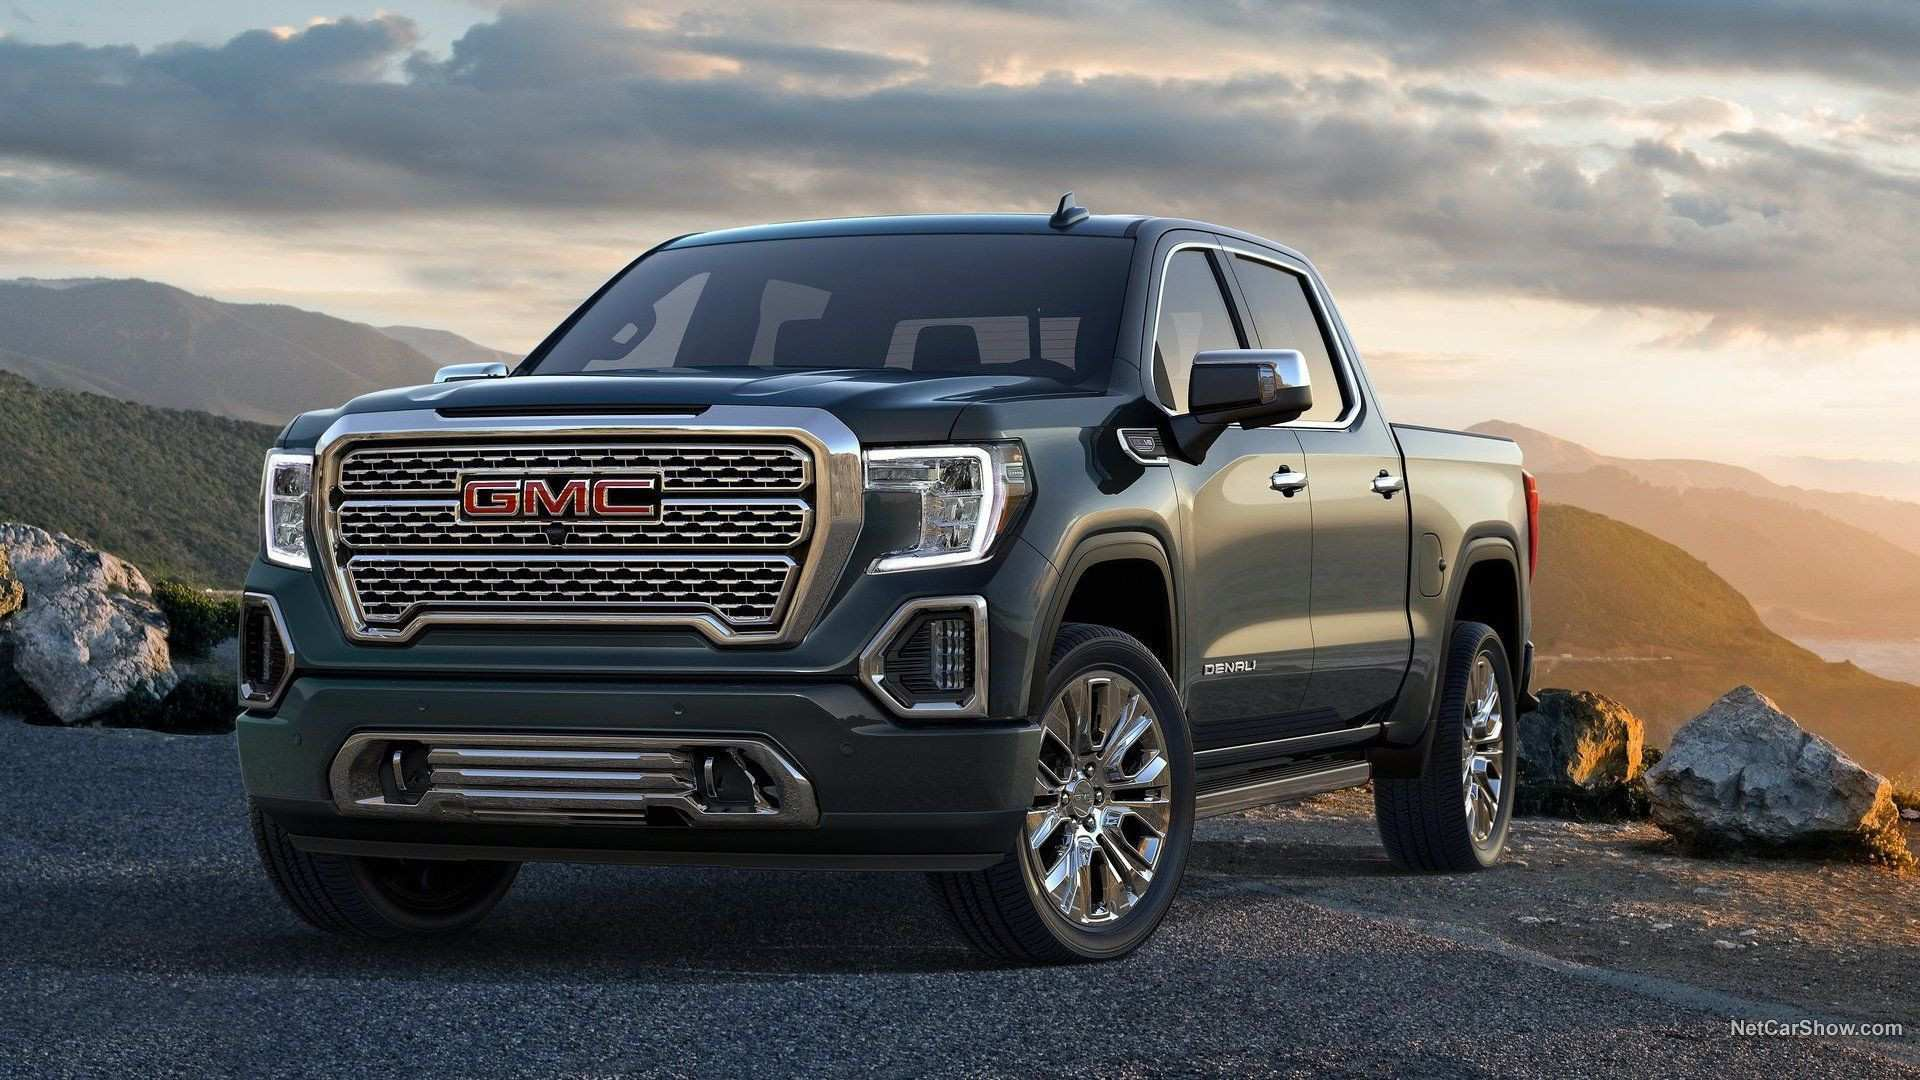 20 New 2020 GMC Envoy Prices with 2020 GMC Envoy